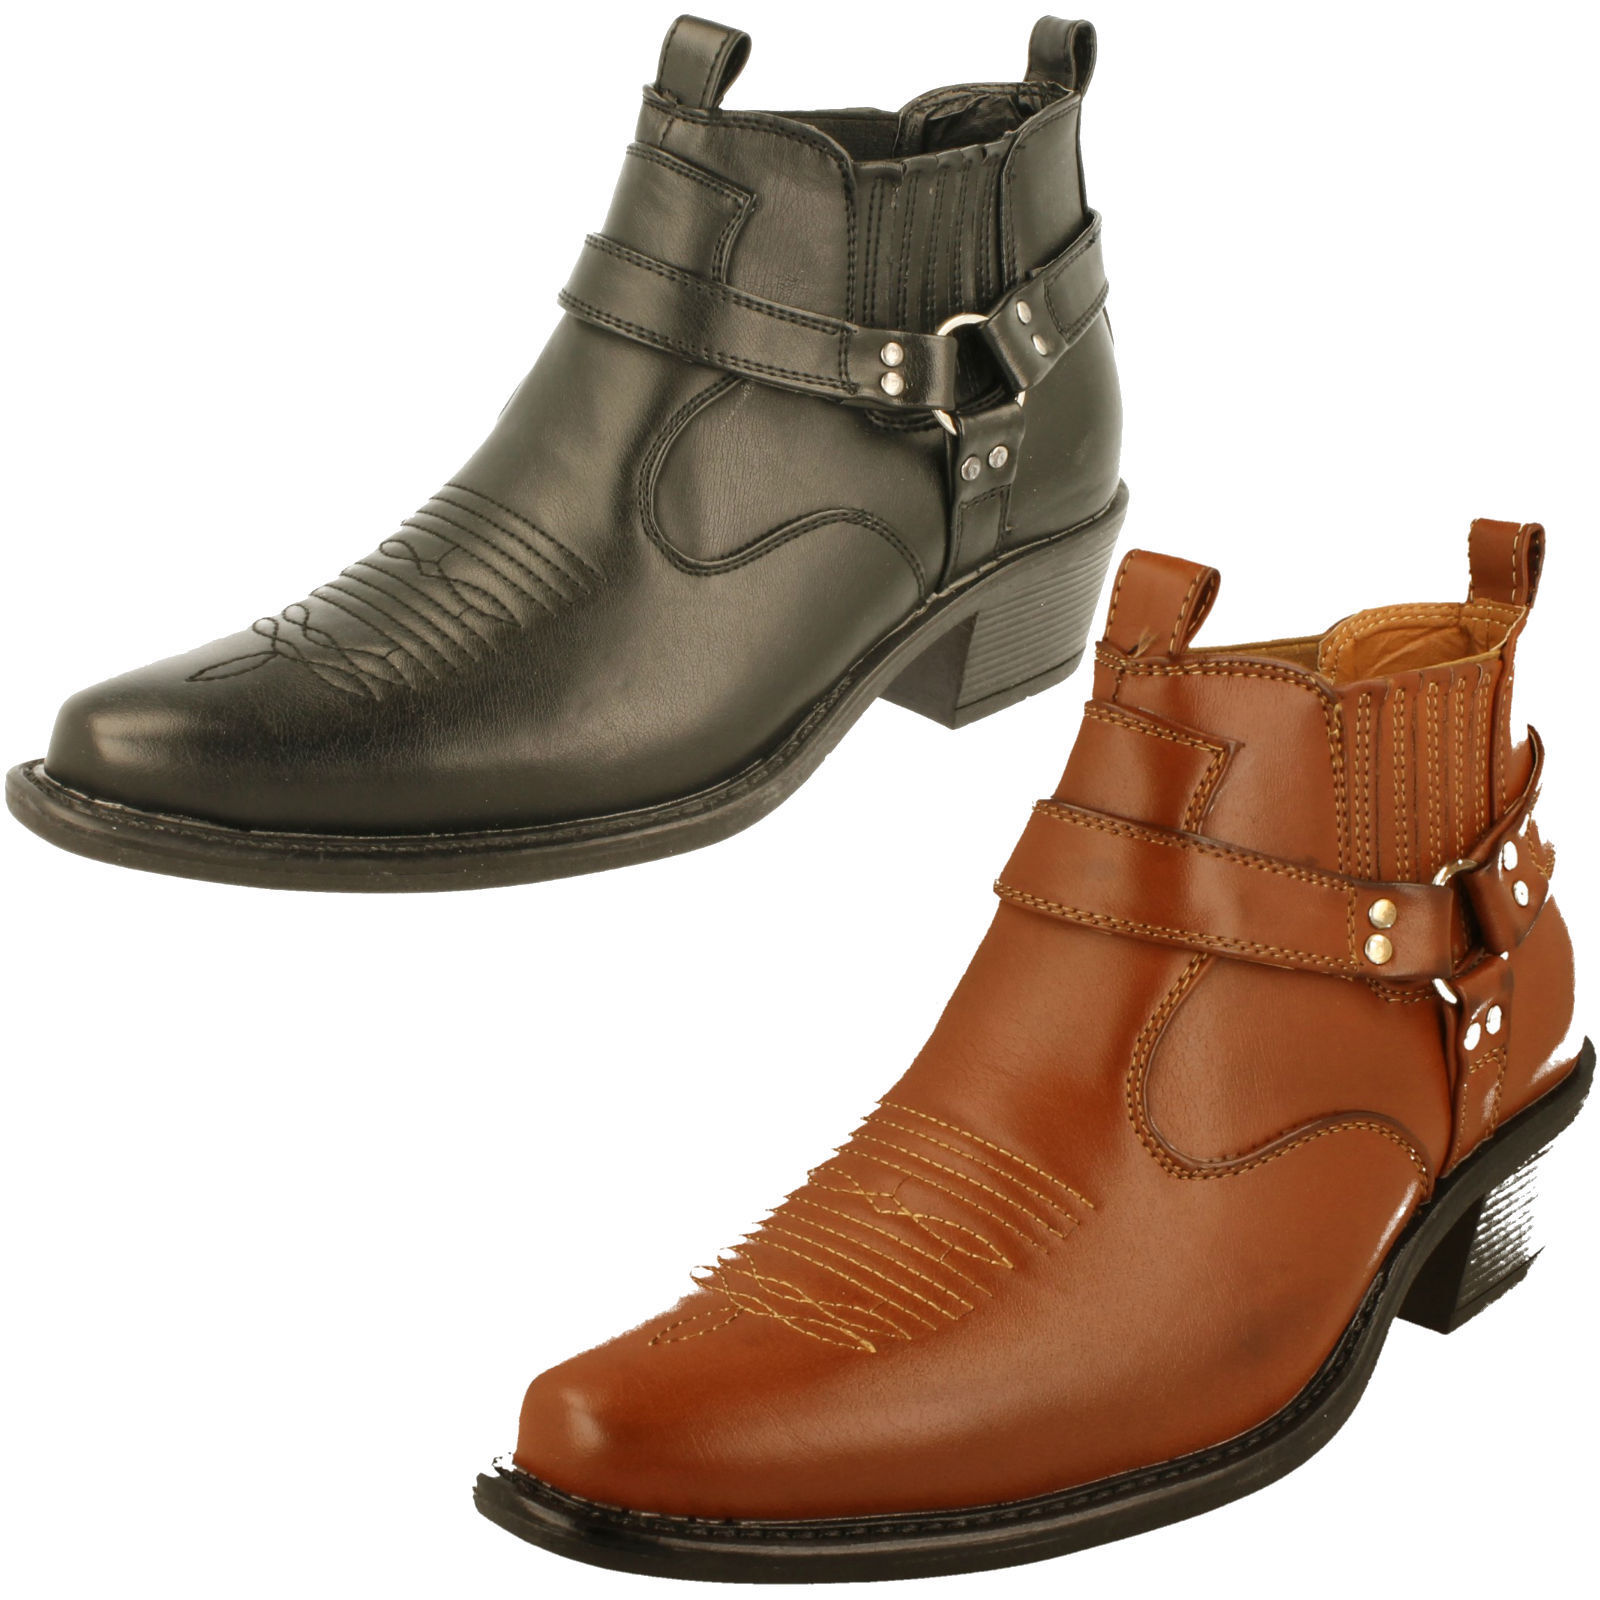 Mens Classique Ankle Boot - MBO-3136